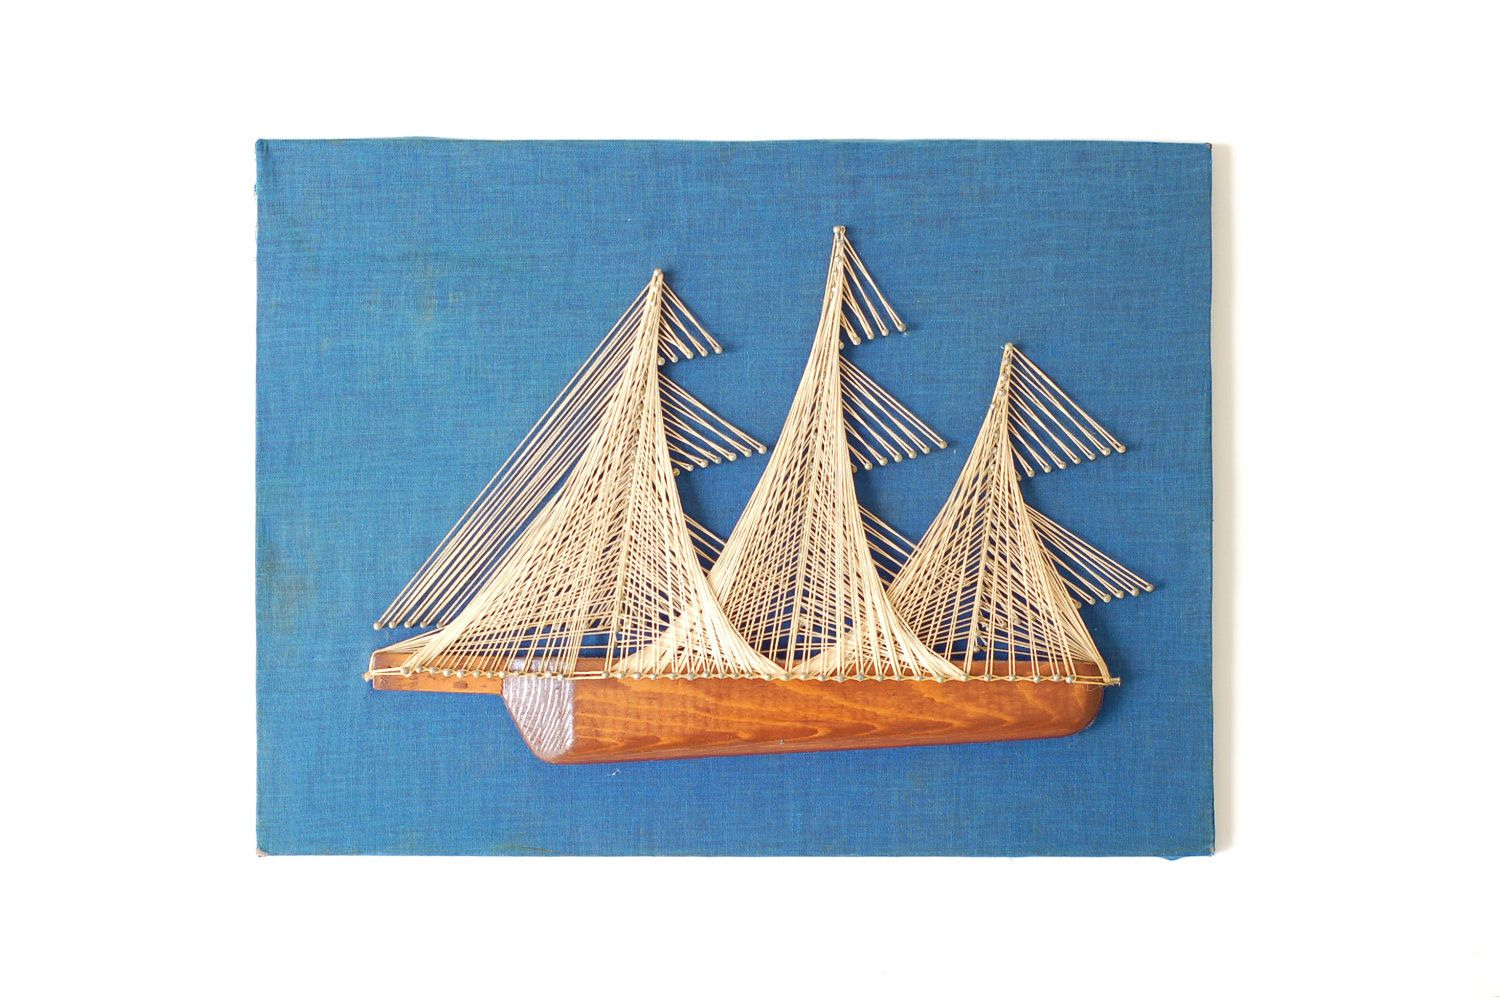 Nautical Ship - Nail & String Art | Nail string art, String art ...